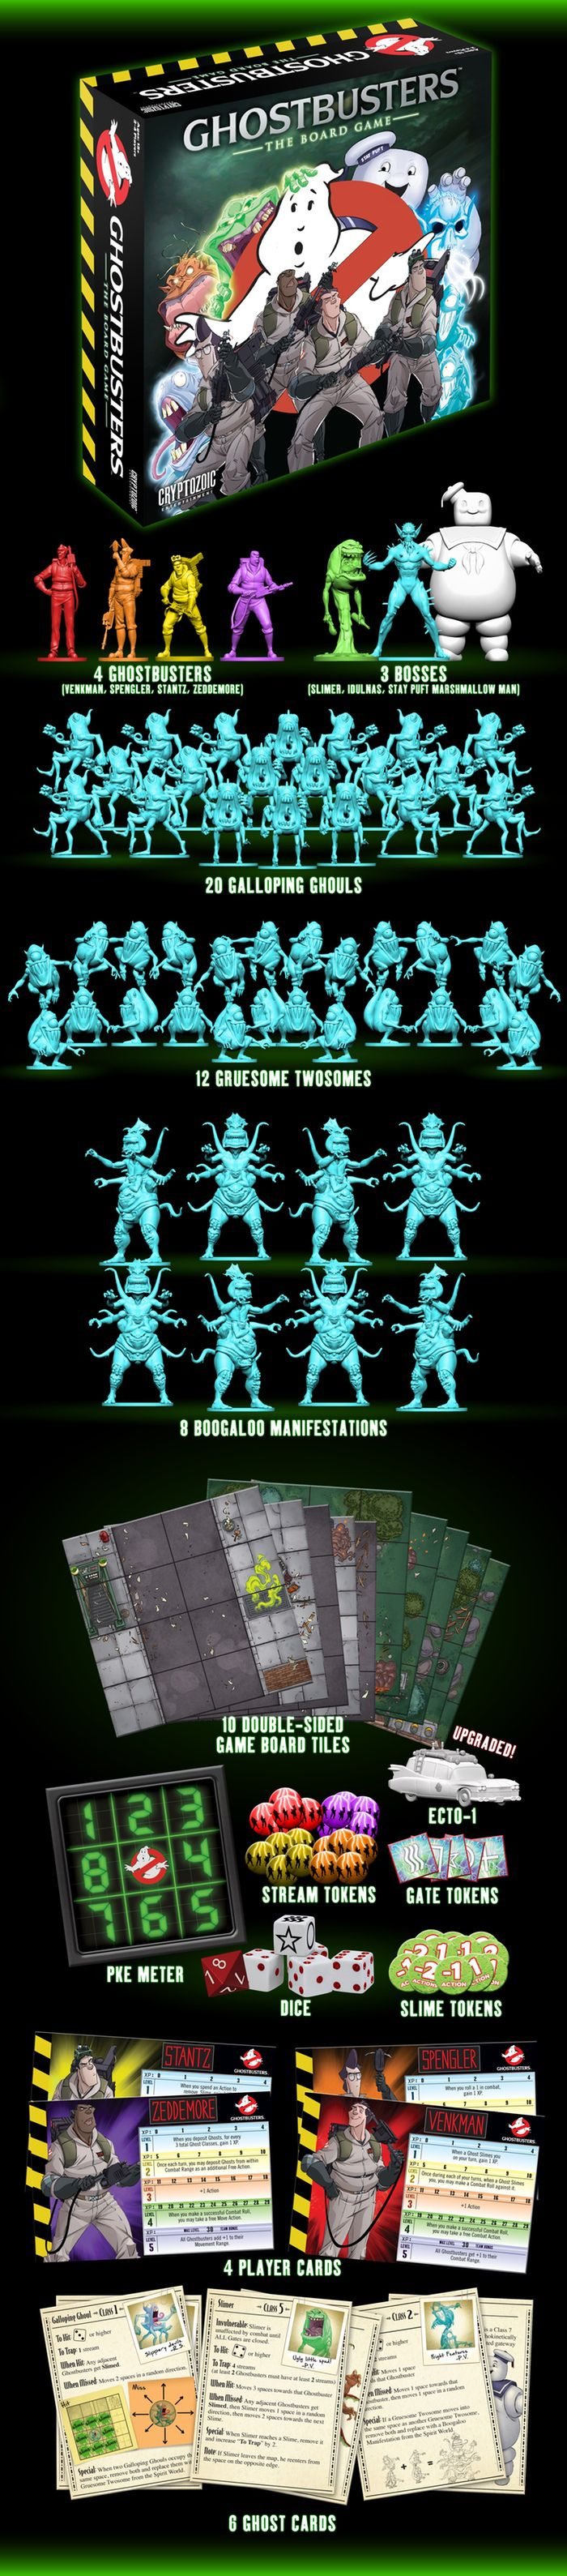 Ghostbusters: The Board Game - box contents